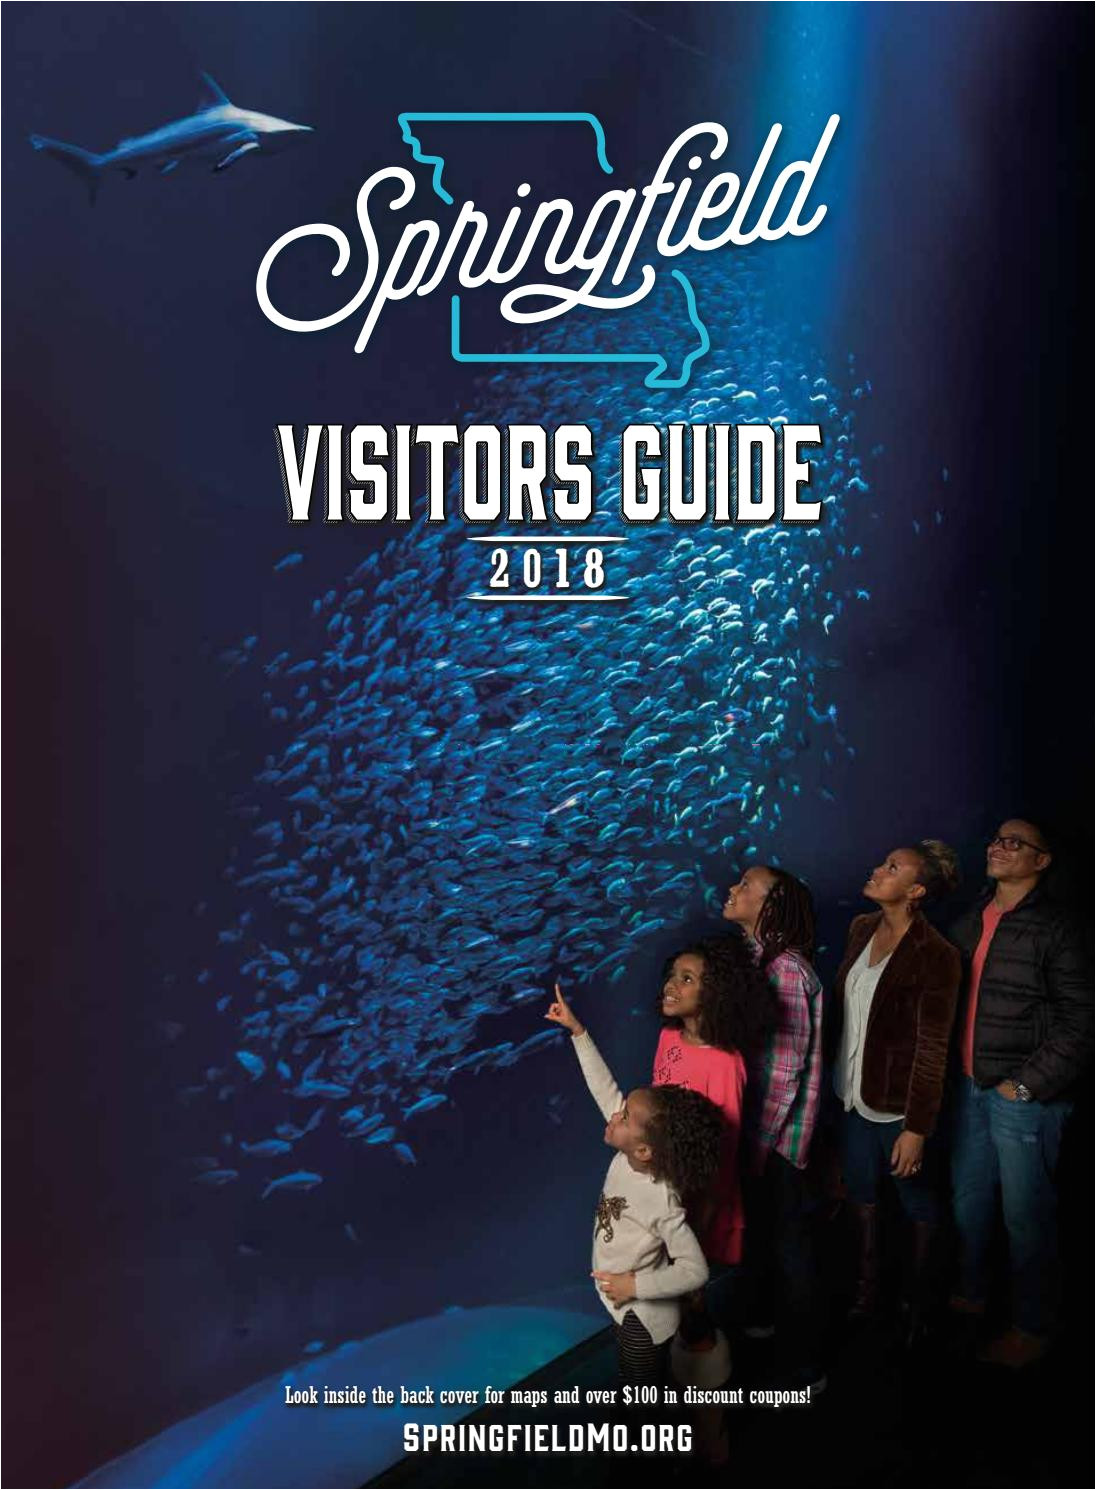 Midwest Rug In Springfield Mo 2018 Official Springfield Missouri area Visitors Guide by